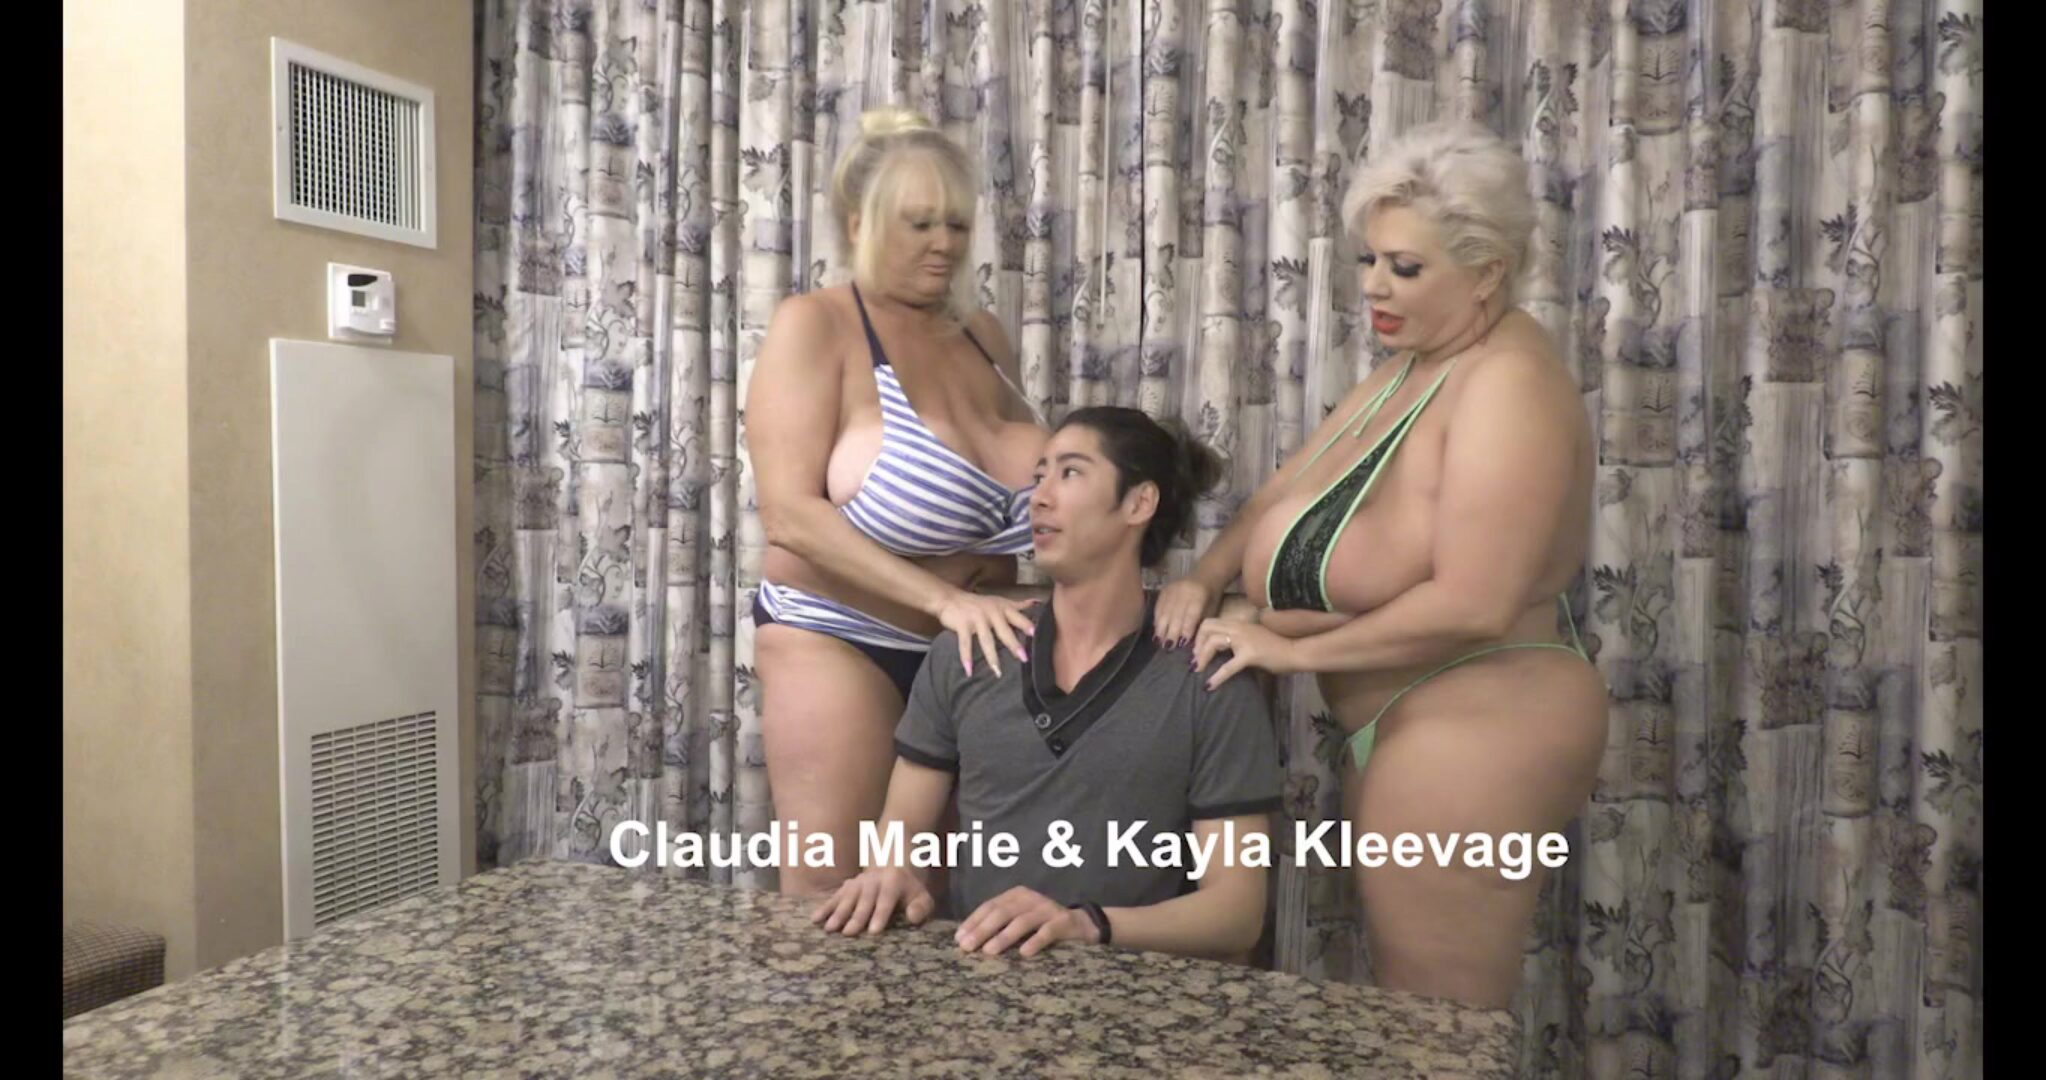 Boy Fucks Saggy Tit Fat Ass Prostitutes Kayla Kleevage and Claudia Marie pumped rock-hard by a young guy